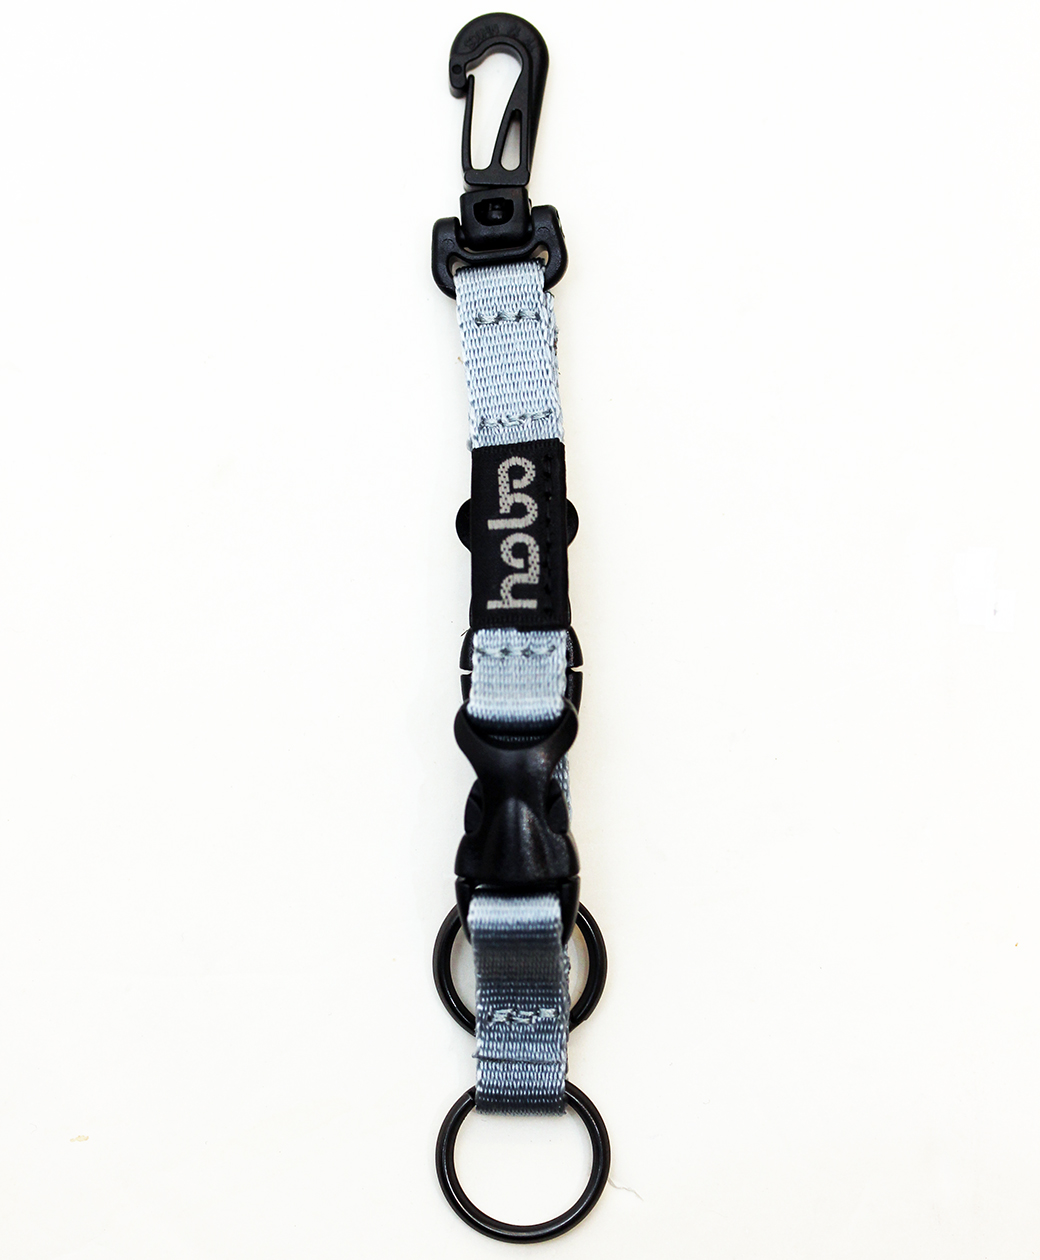 hobo NYLON TAPE KEY RING with DOUBLE BUCKLE RELEASE(SAX)